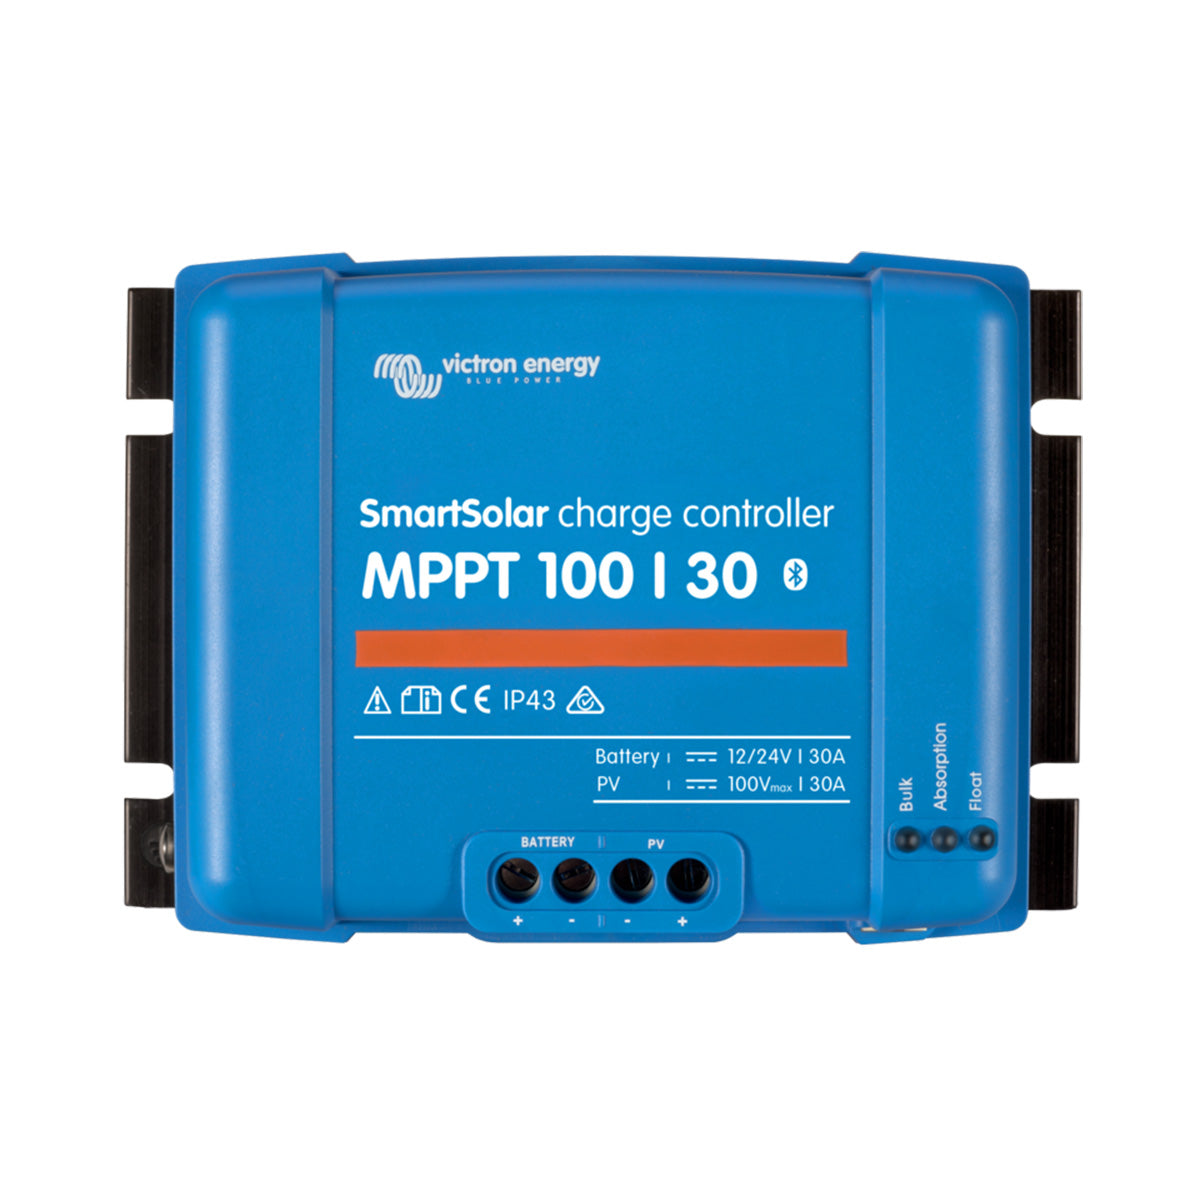 Victron Energy SmartSolar MPPT 100/30 Charge Controller with built-in Bluetooth